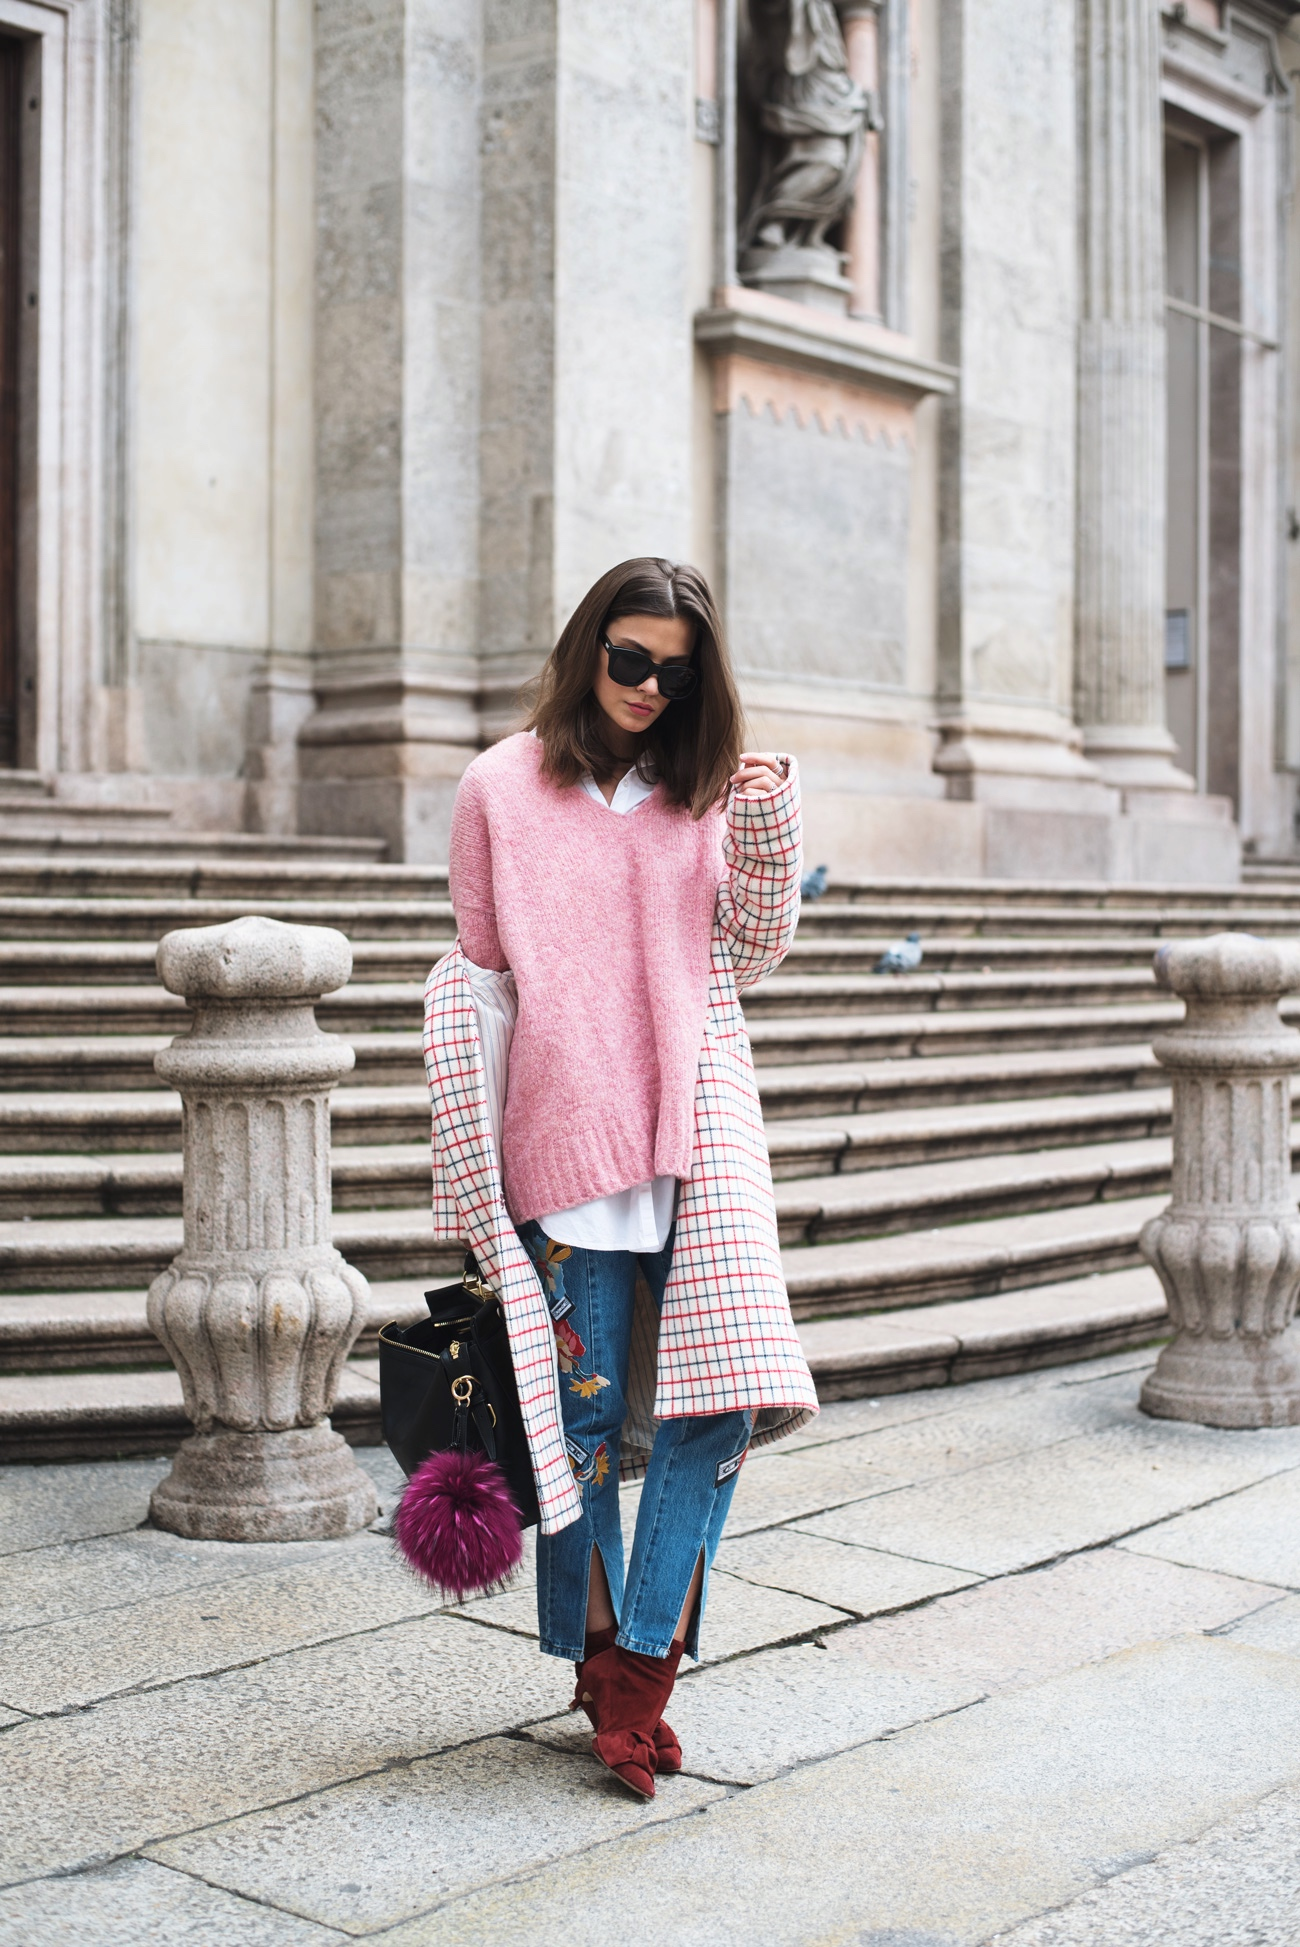 milan-fashion-week-streetstyle-pastel-colors-layering-trend-spring-fashiioncarpet